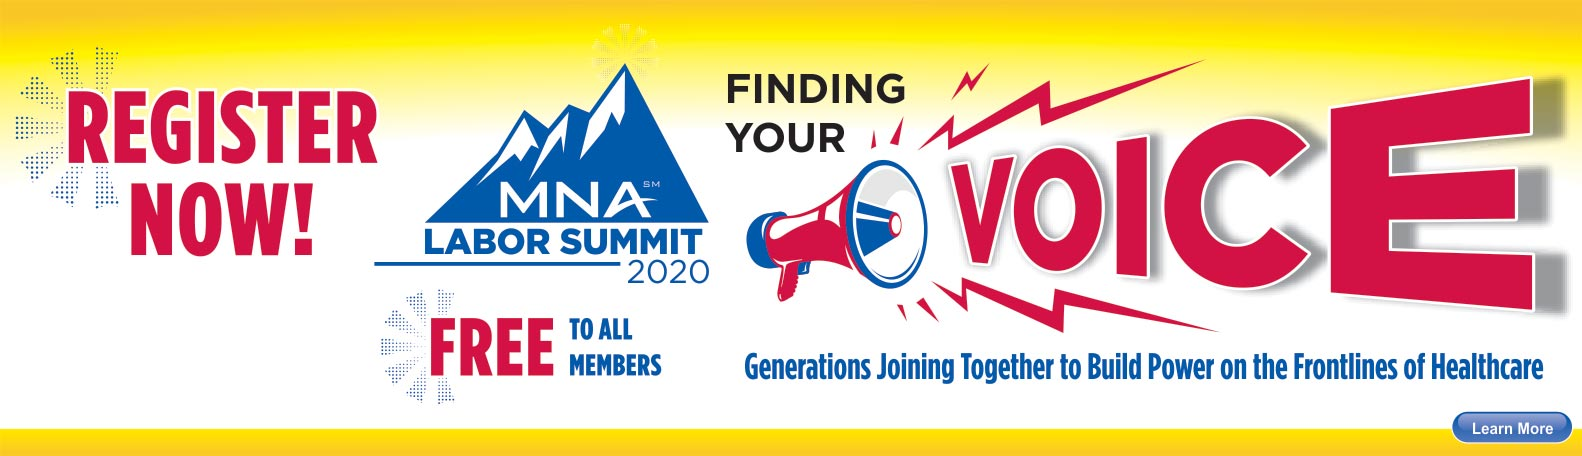 Register for MNA Labor Summit 2020 - Free to all members.